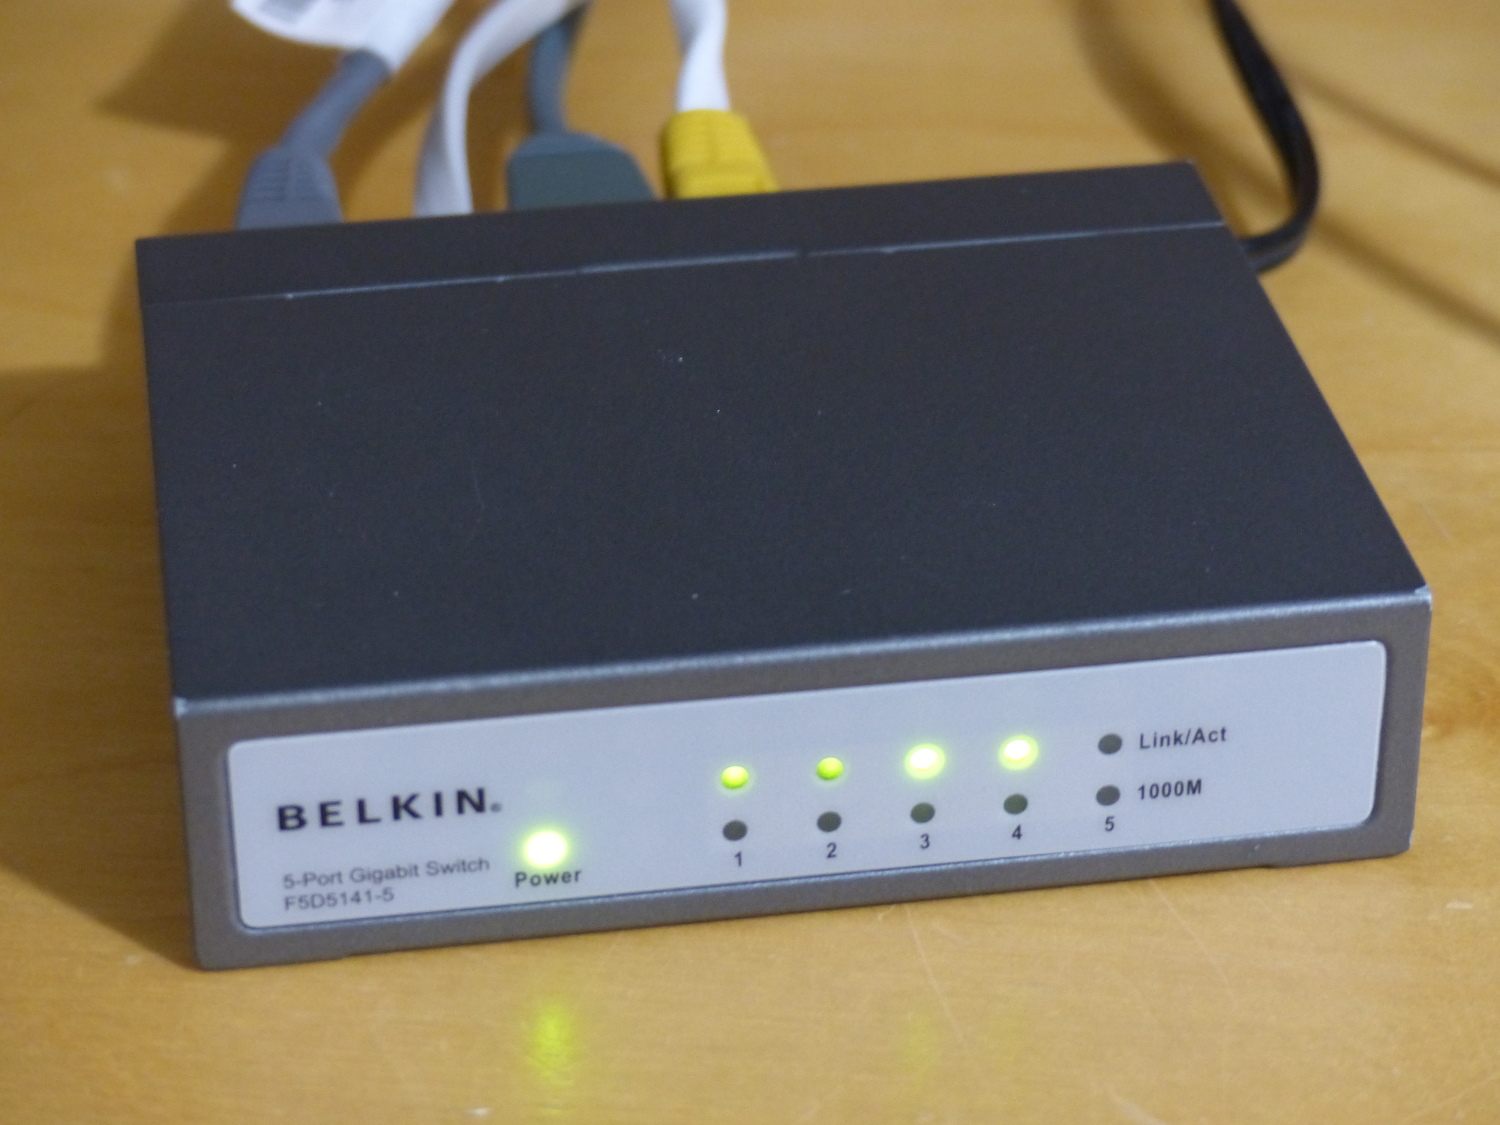 You'll need an Ethernet switch – if you run out of ports, most VoIP phones have a pass-through connector to chain other devices